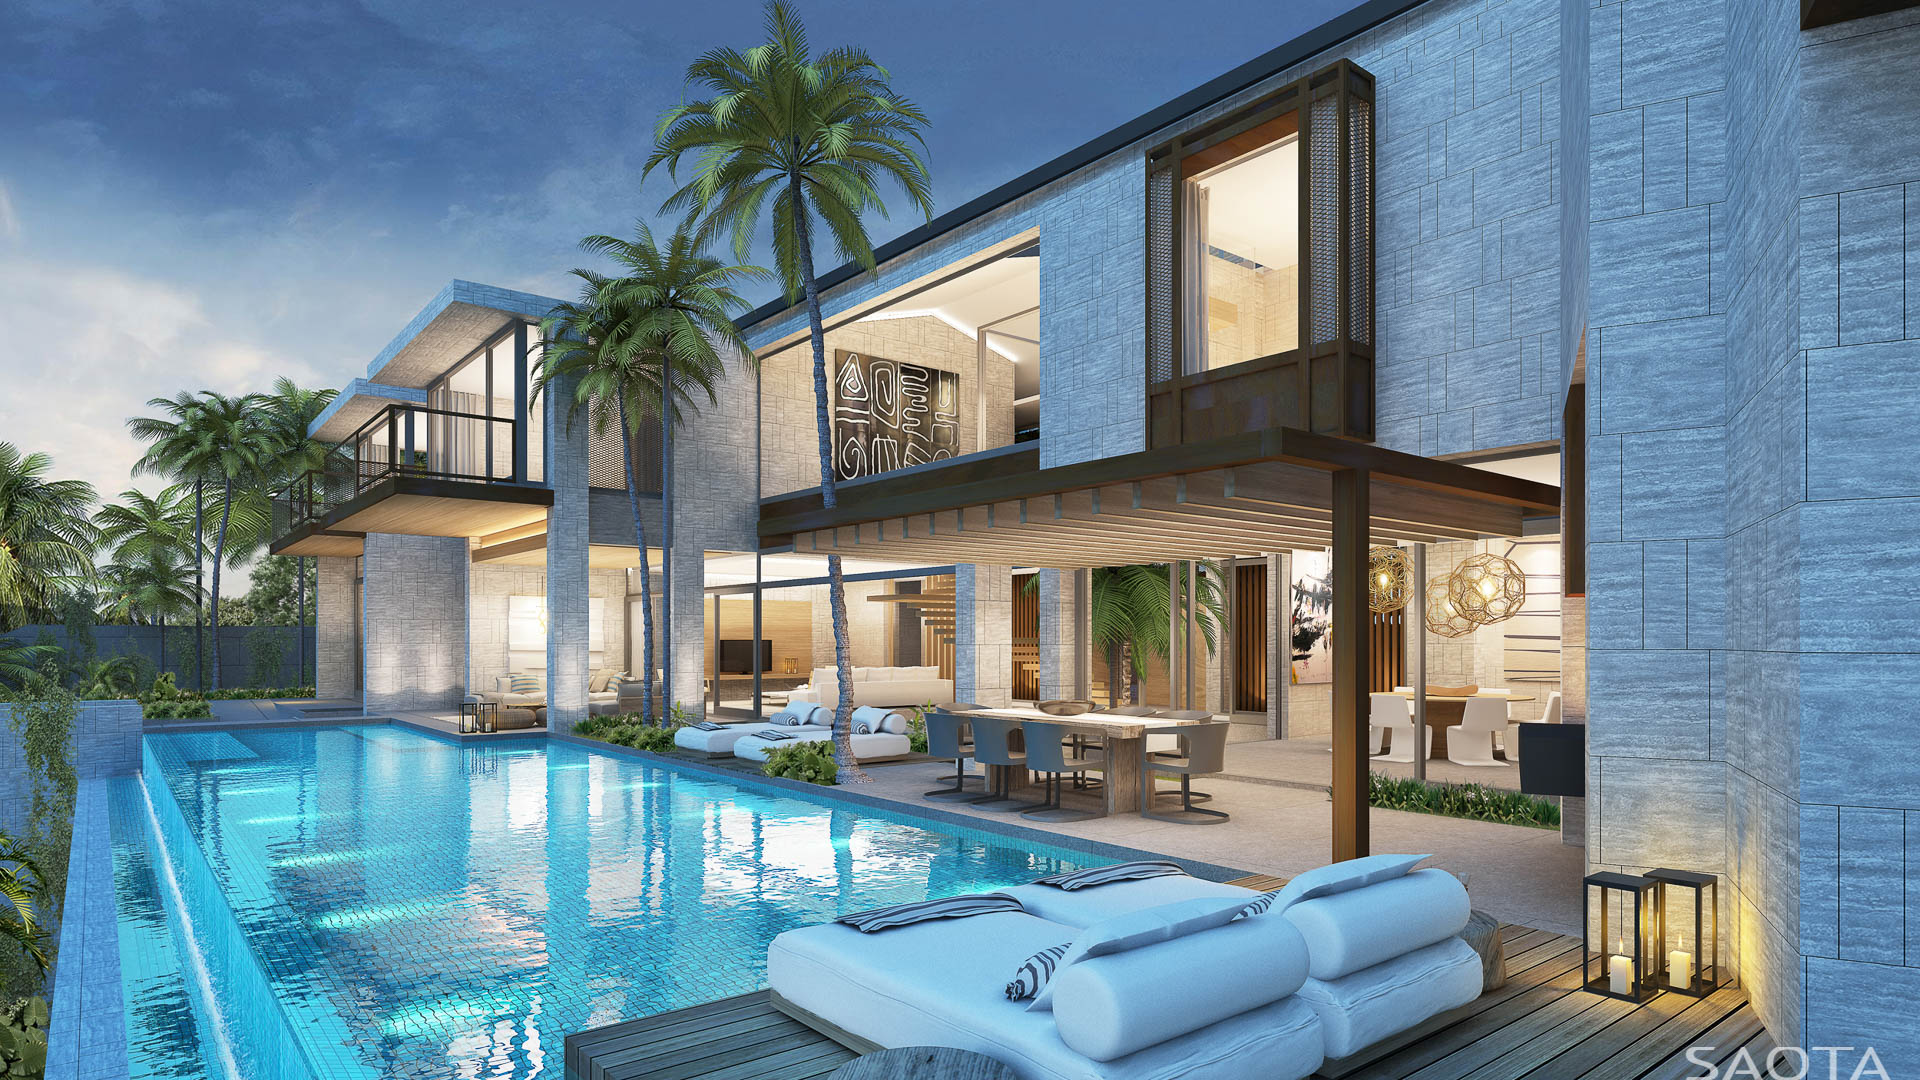 30 yet to be built modern dream homes by saota part 1 architecture design - Casa con piscina ...